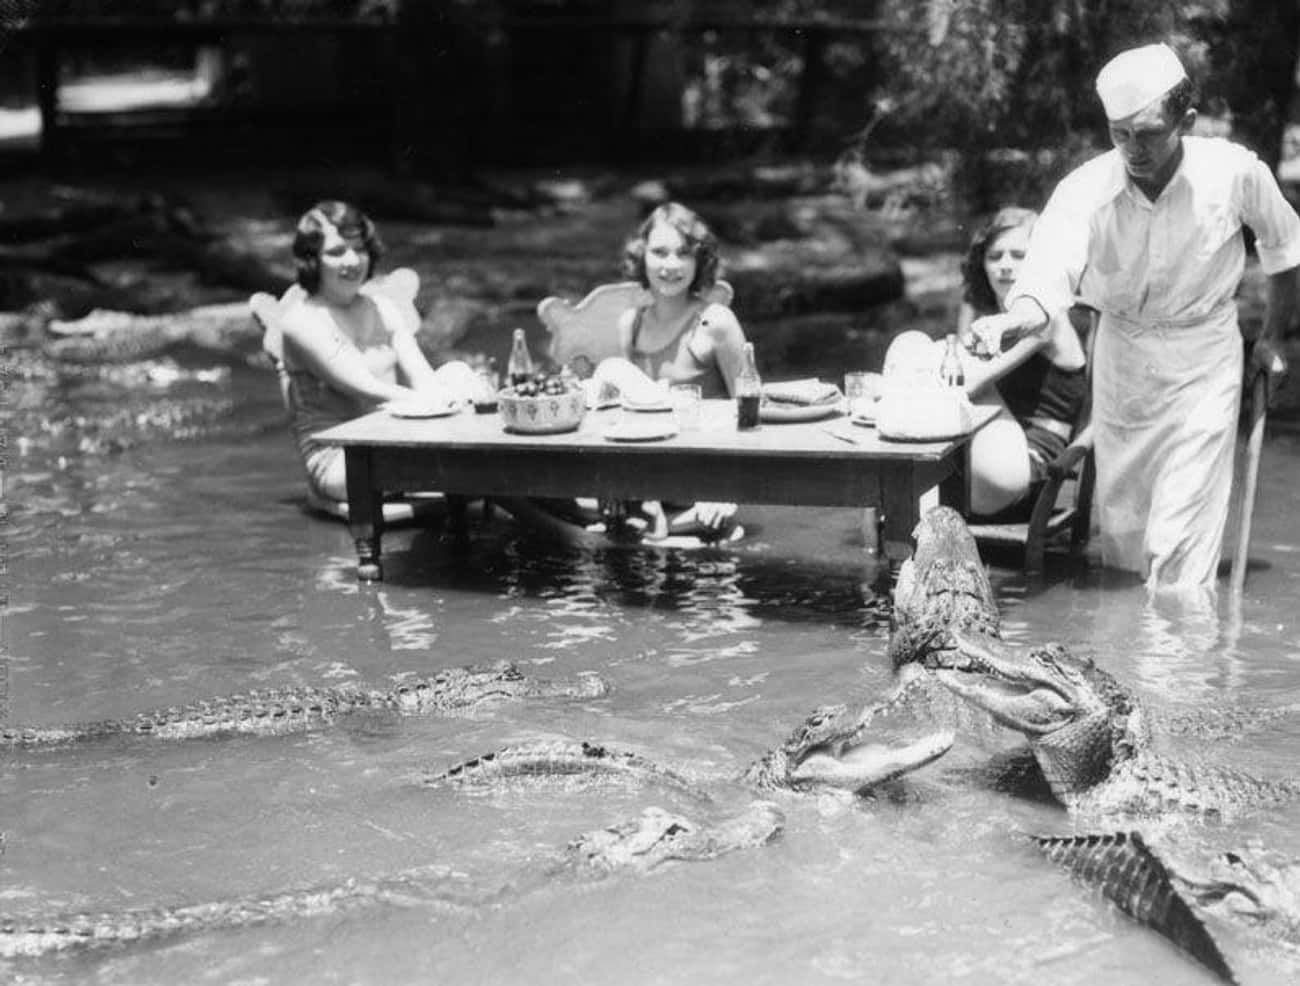 Several Women Dine Alongside T is listed (or ranked) 2 on the list A Look Inside The Mind-Bogglingly Dangerous Los Angeles Alligator Farm